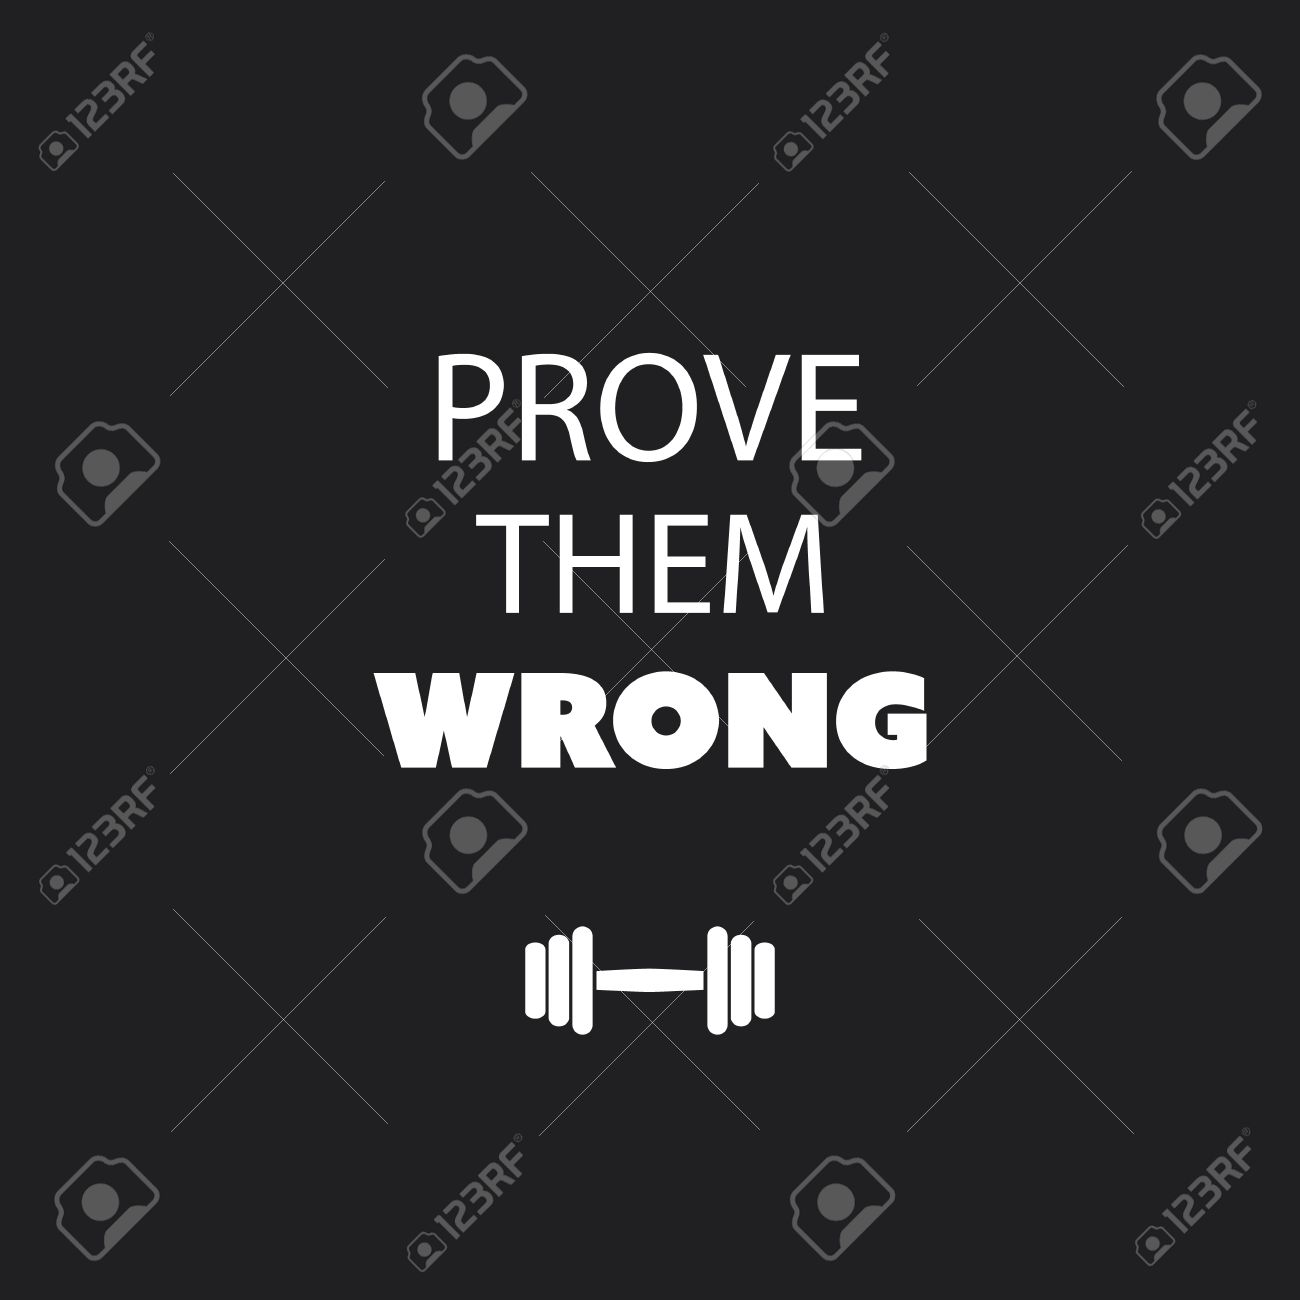 Prove Them Wrong Quotes Prove Them Wrong  Inspirational Quote Slogan Saying On Black